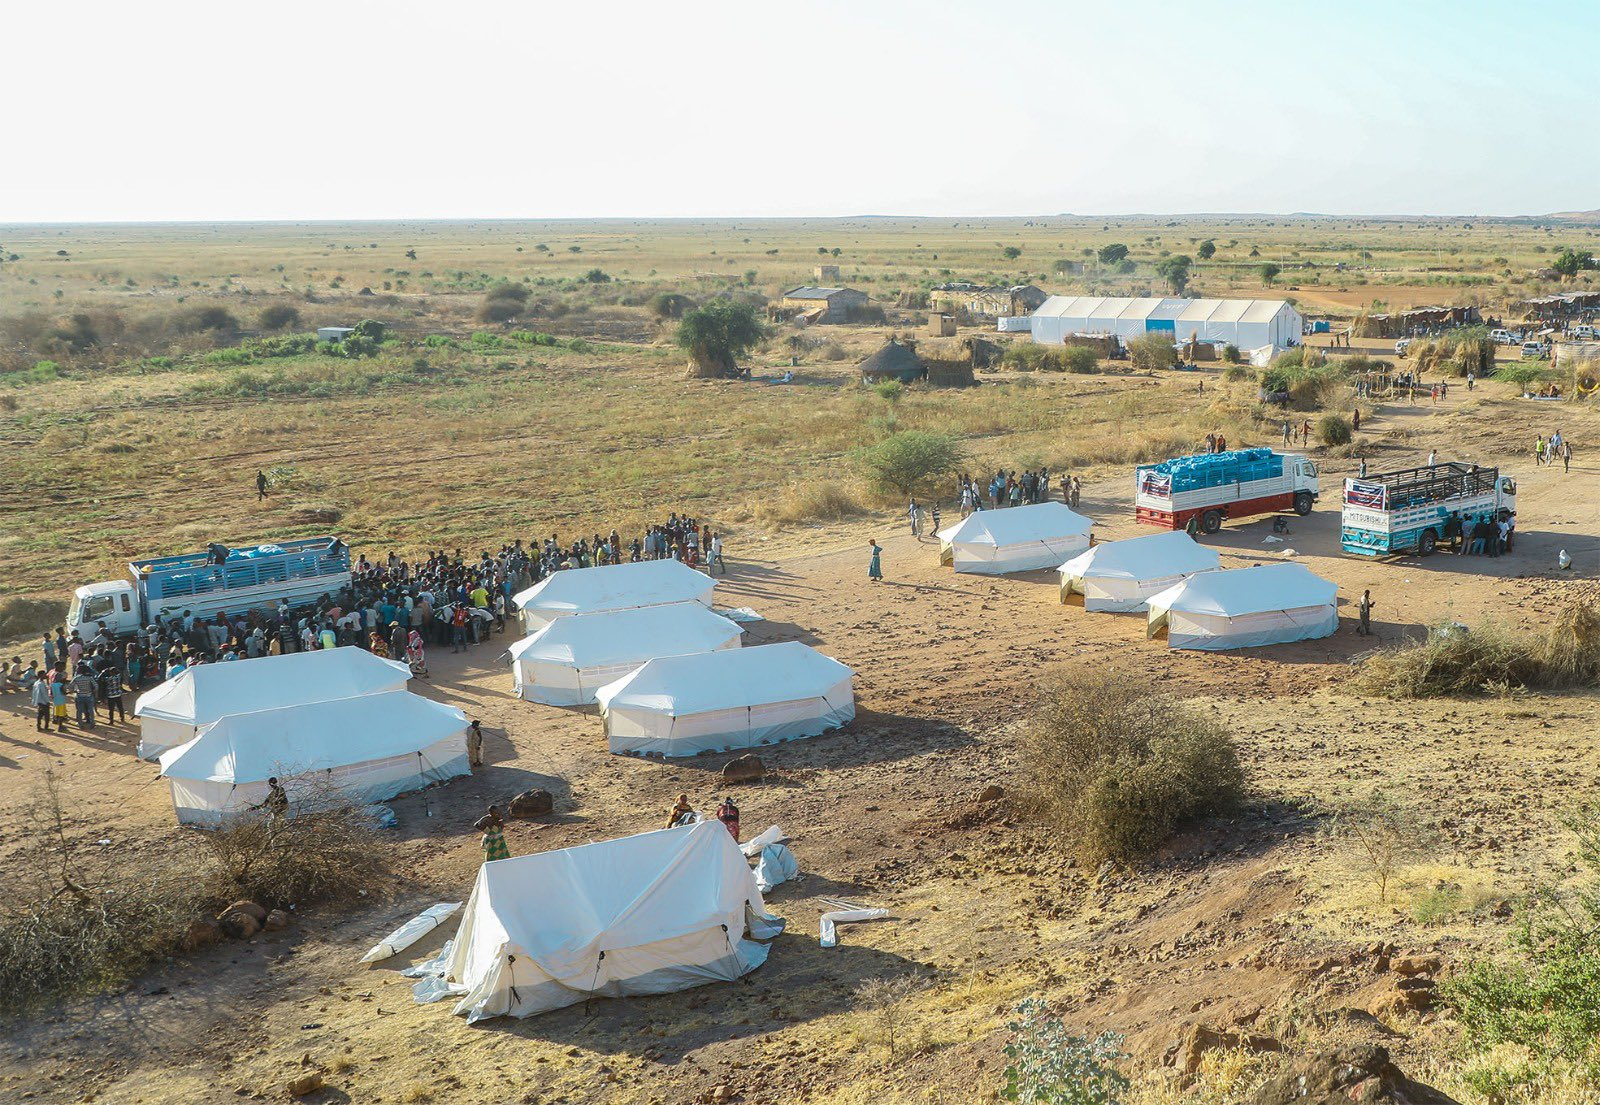 Qatar Charity Carries Out Relief Intervention for Ethiopian Refugees in Sudan